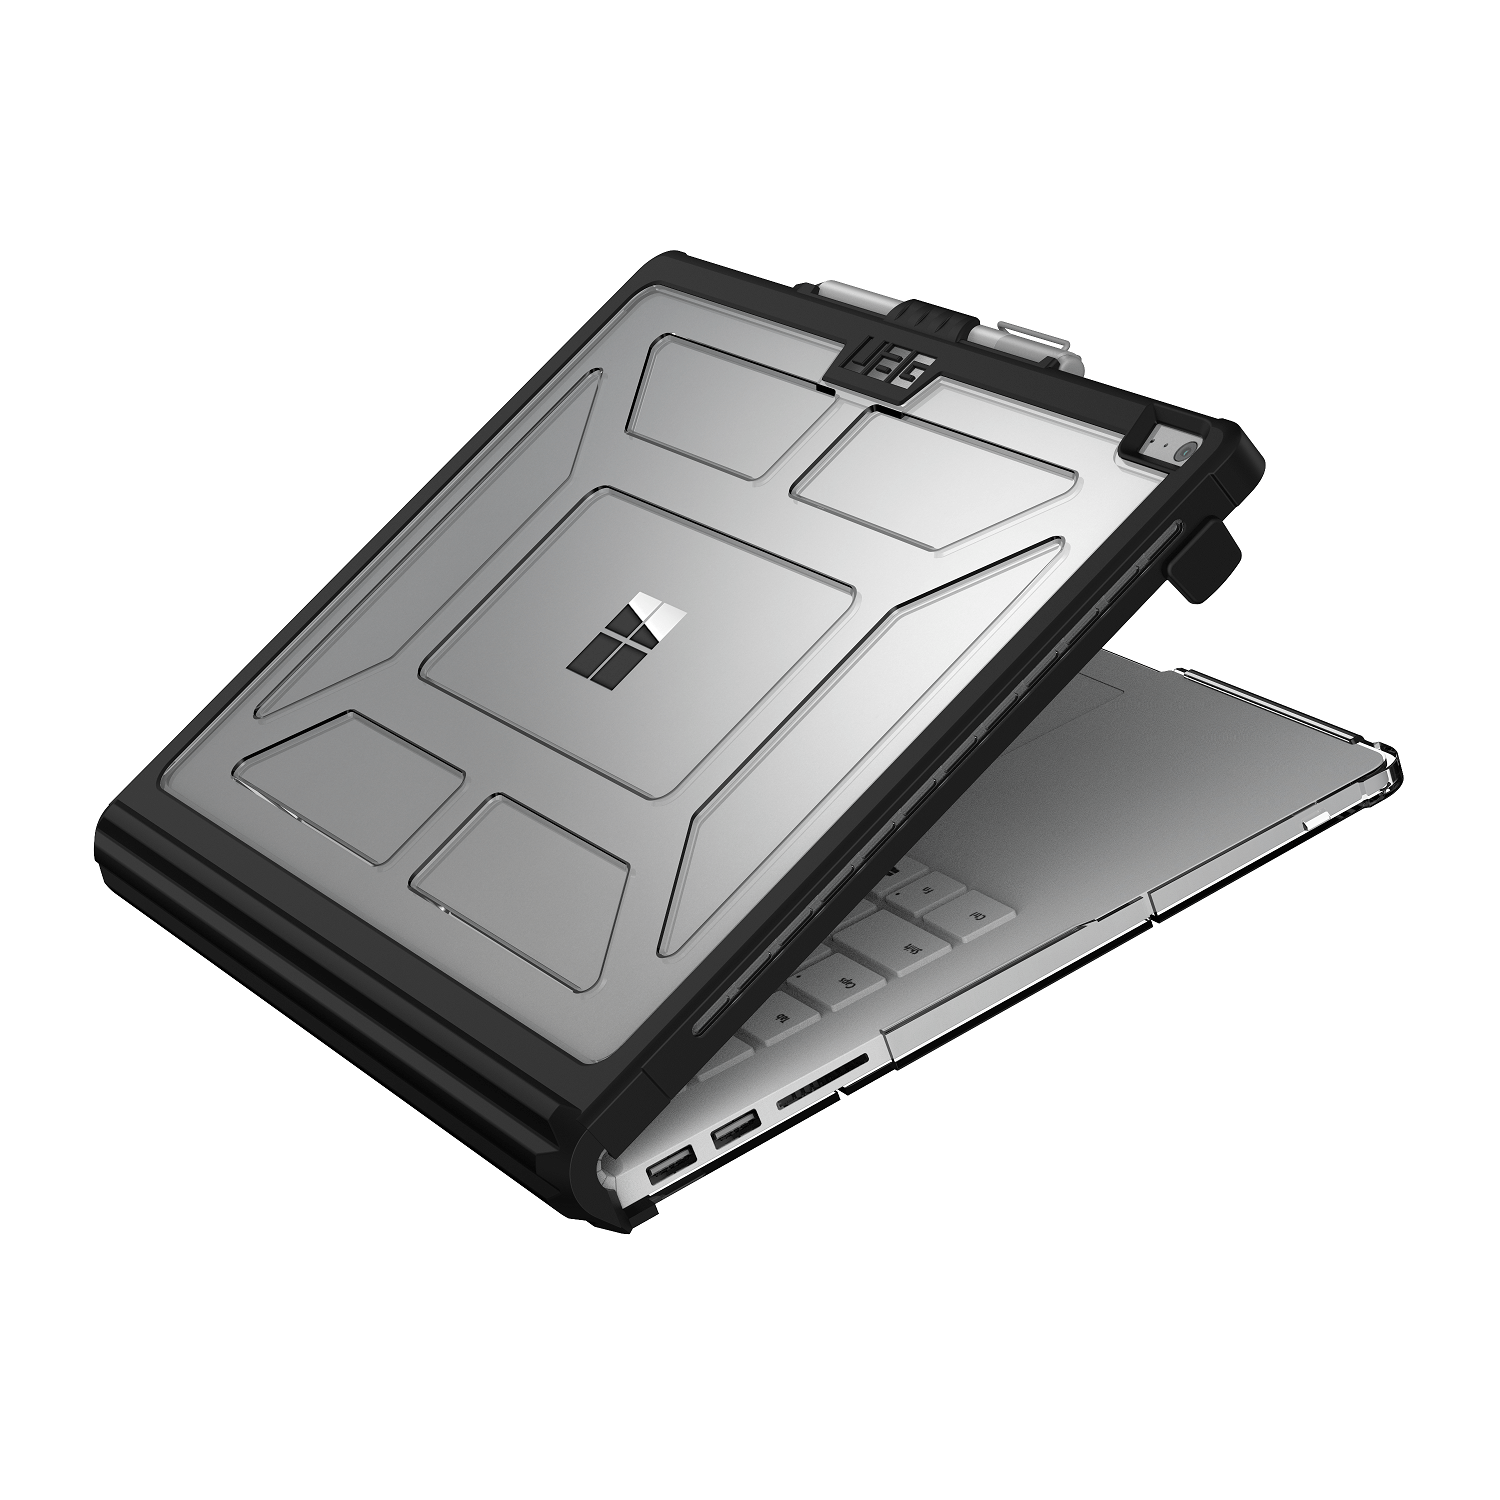 Book Cover Case : Rugged case for microsoft surface book by uag urban